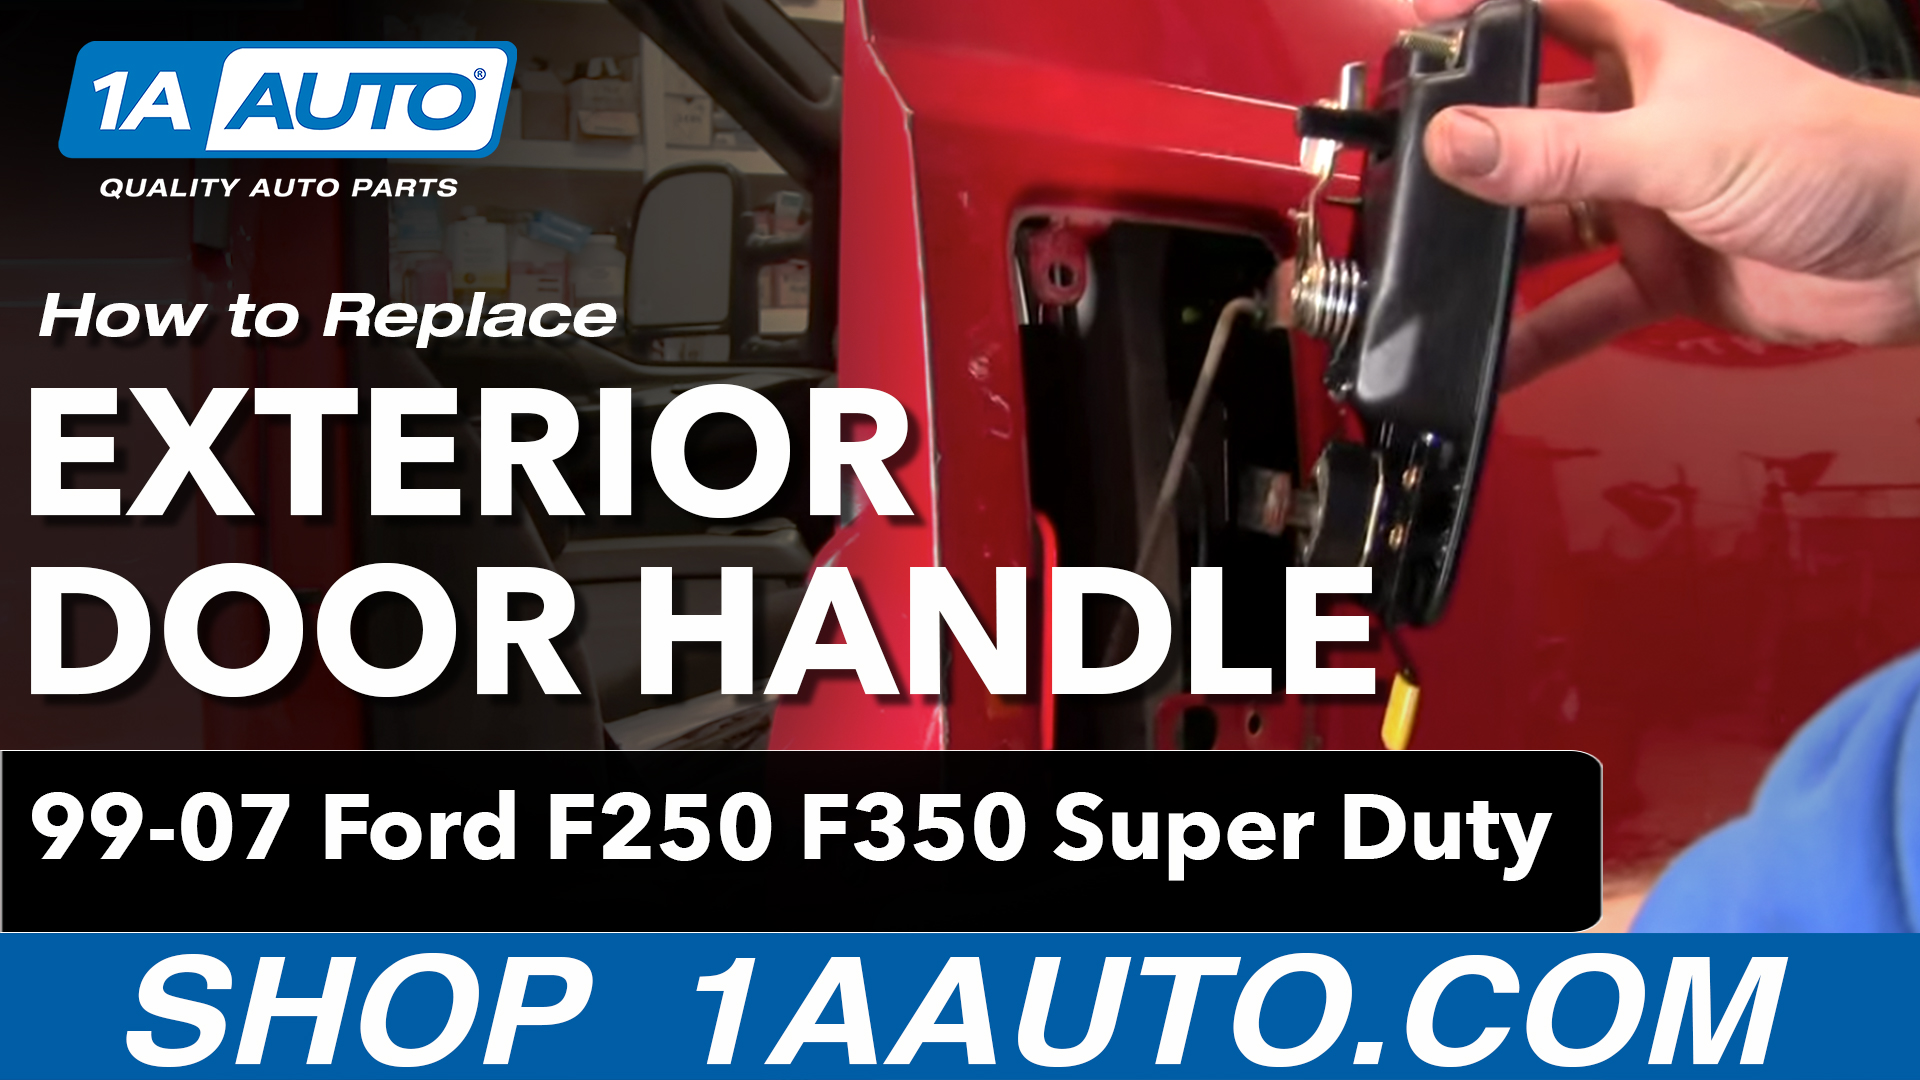 How To Replace Exterior Door Handle 99 15 Ford F250 Super Duty 1a Auto